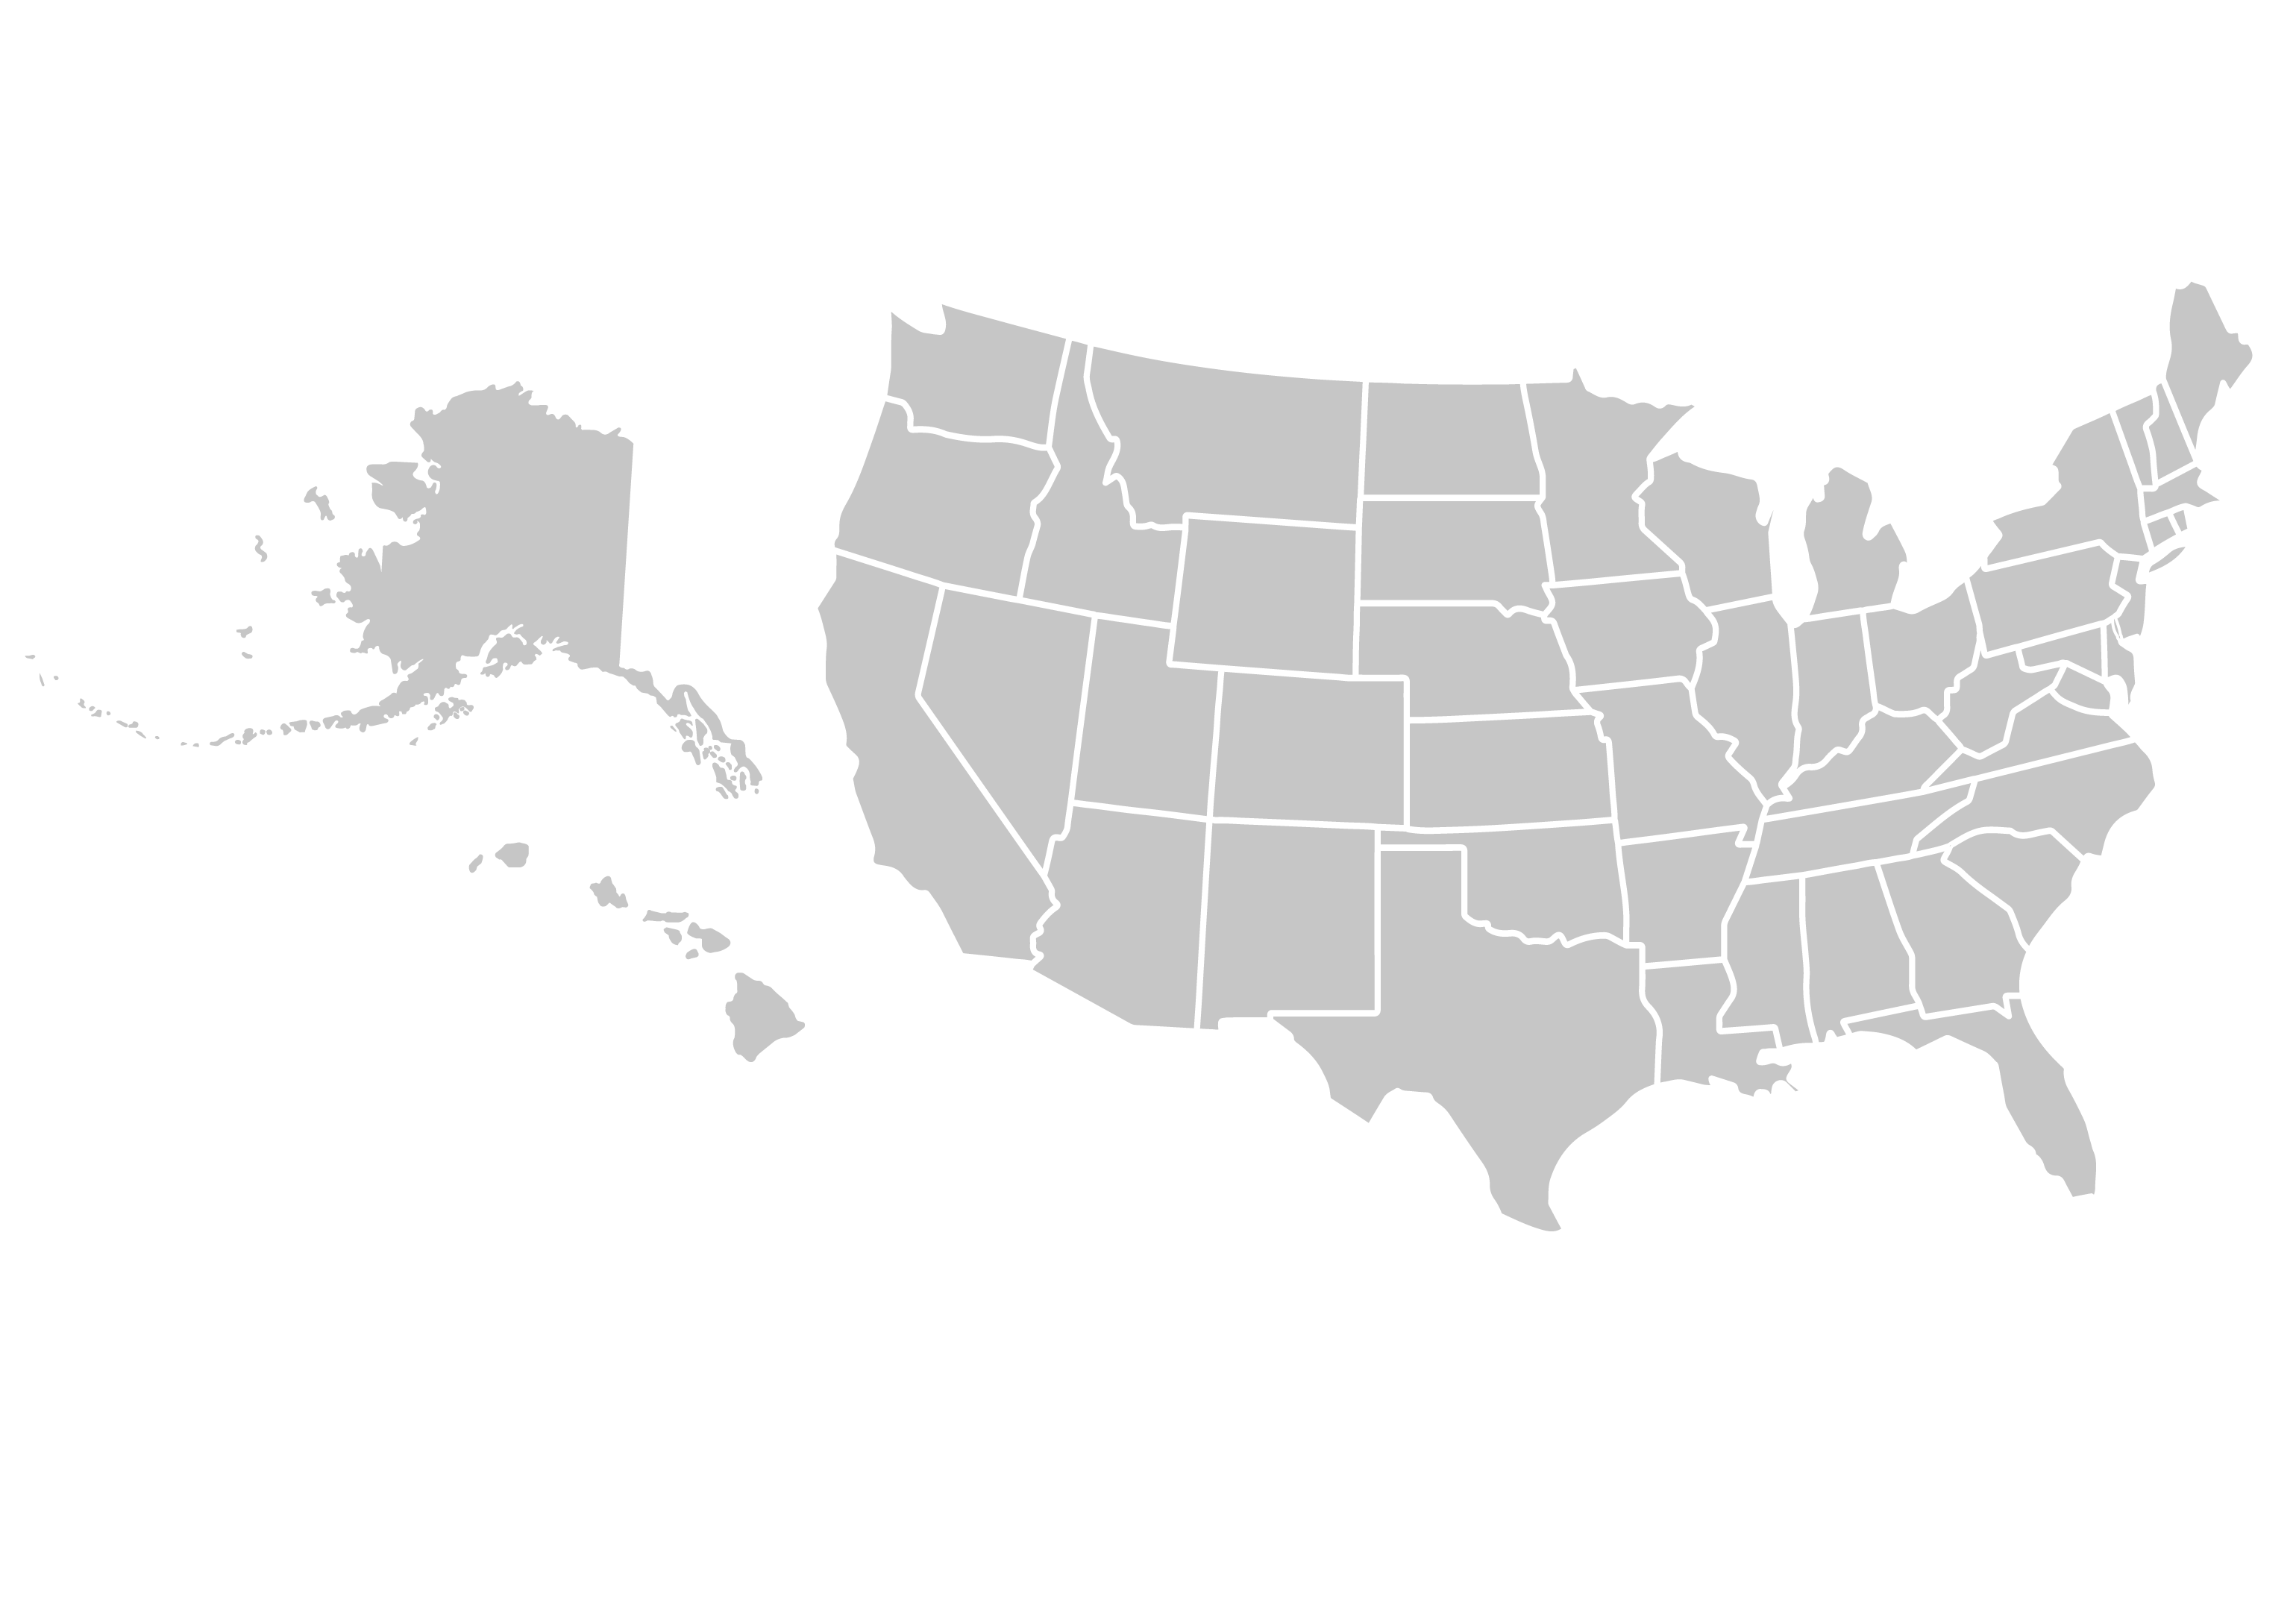 Silhouette of the United States